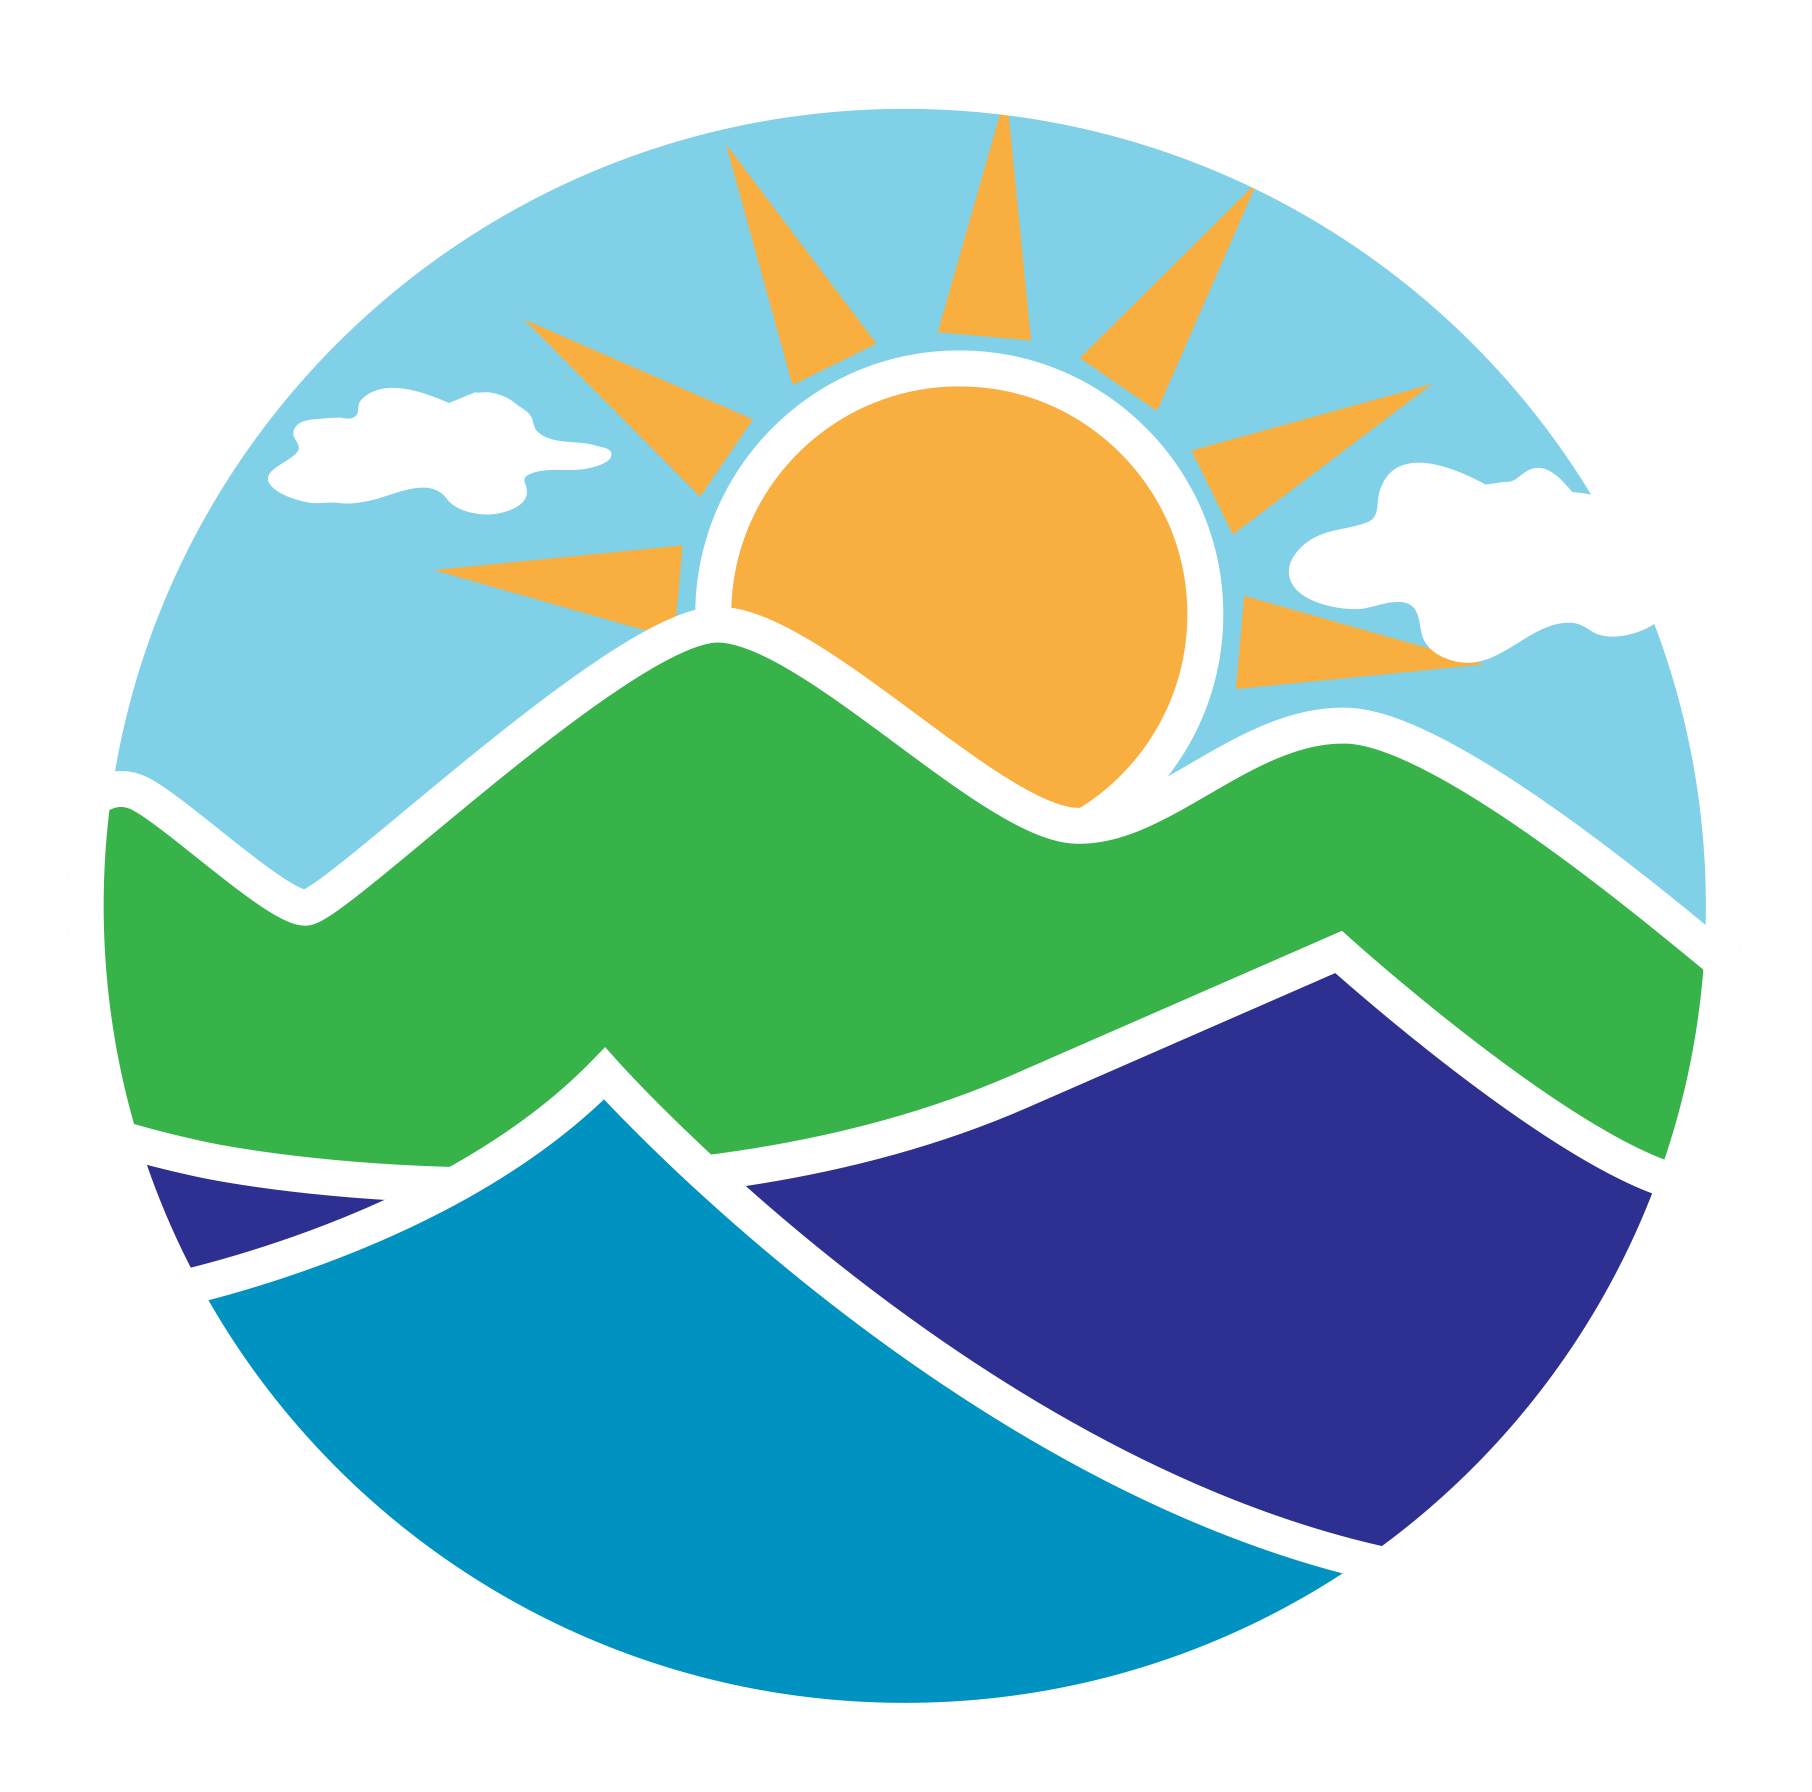 Icon for the National Centers for Environmental Information (NCEI)